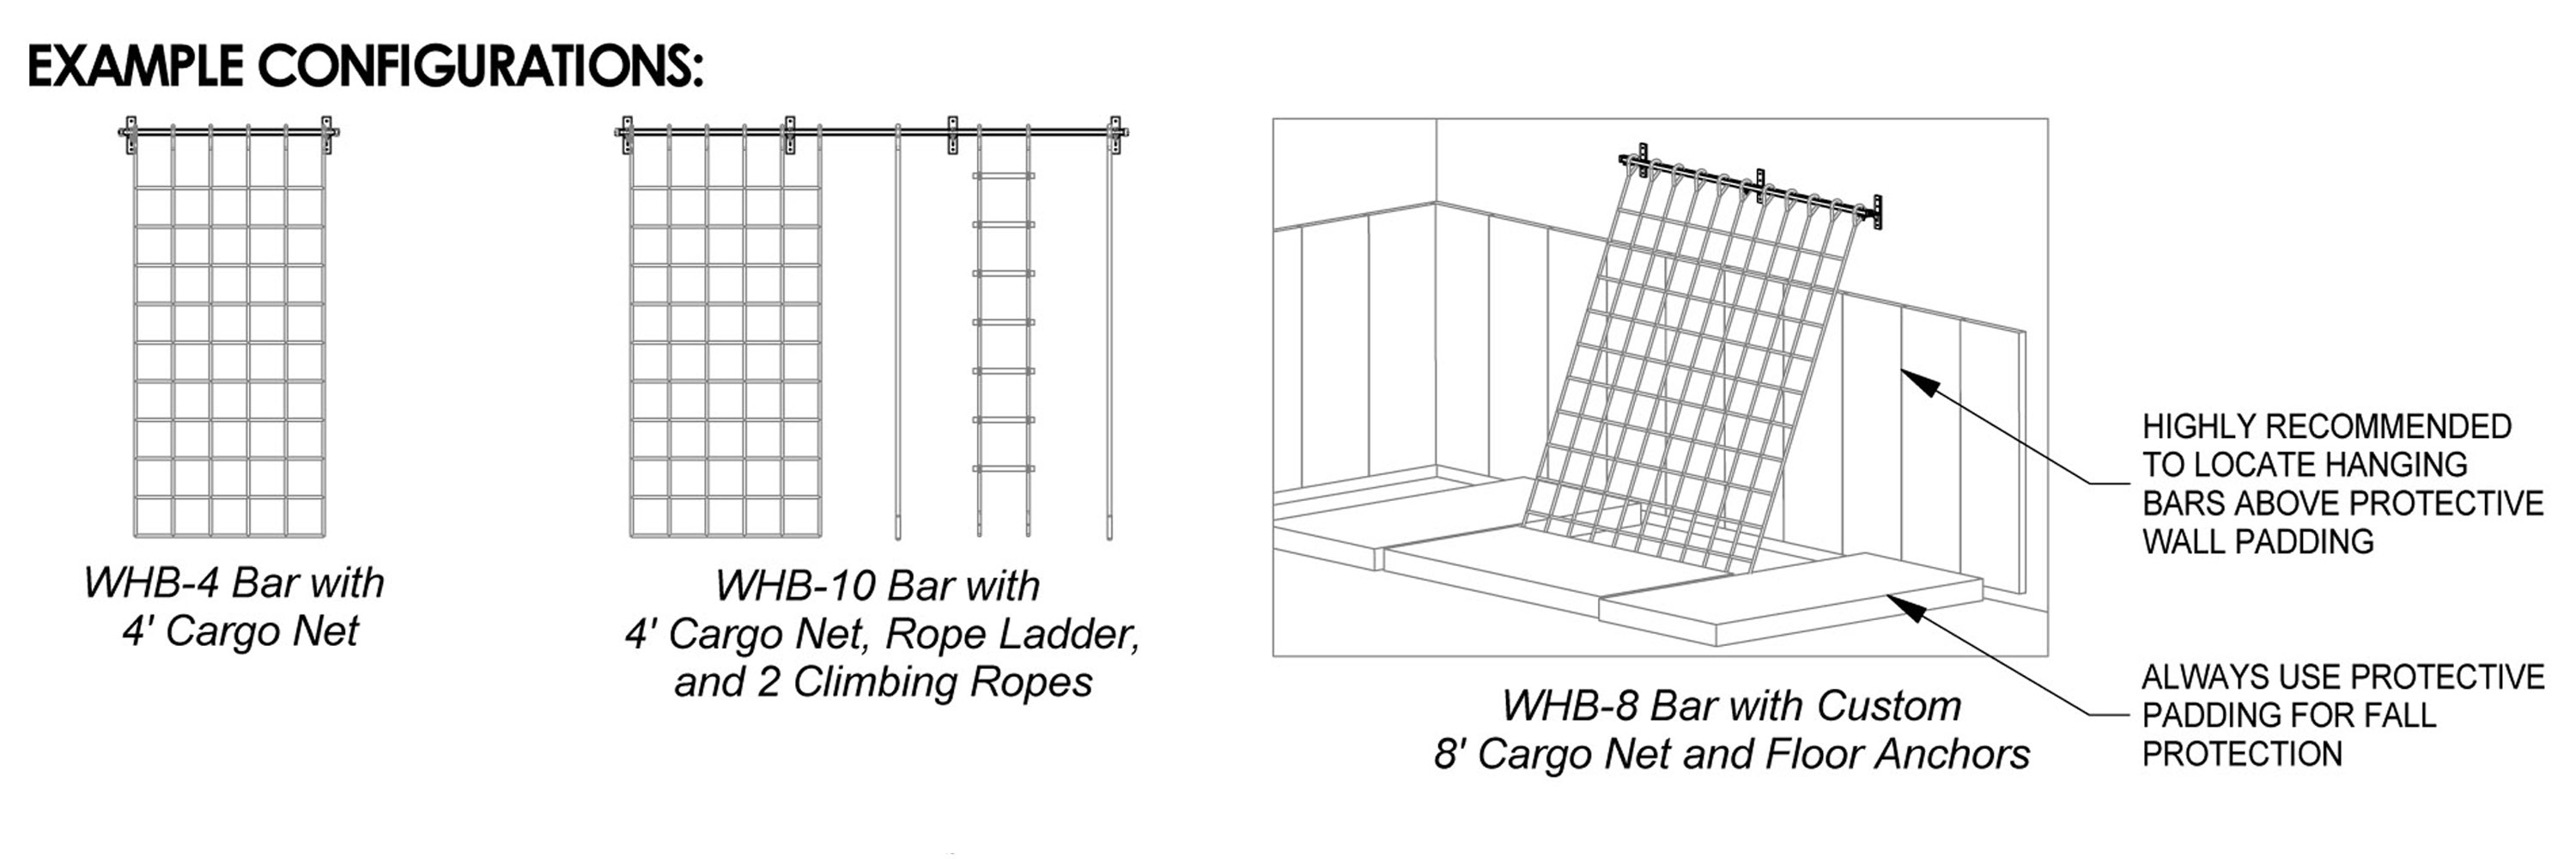 Wall Hanging Bar Product Specifications | WHB Series